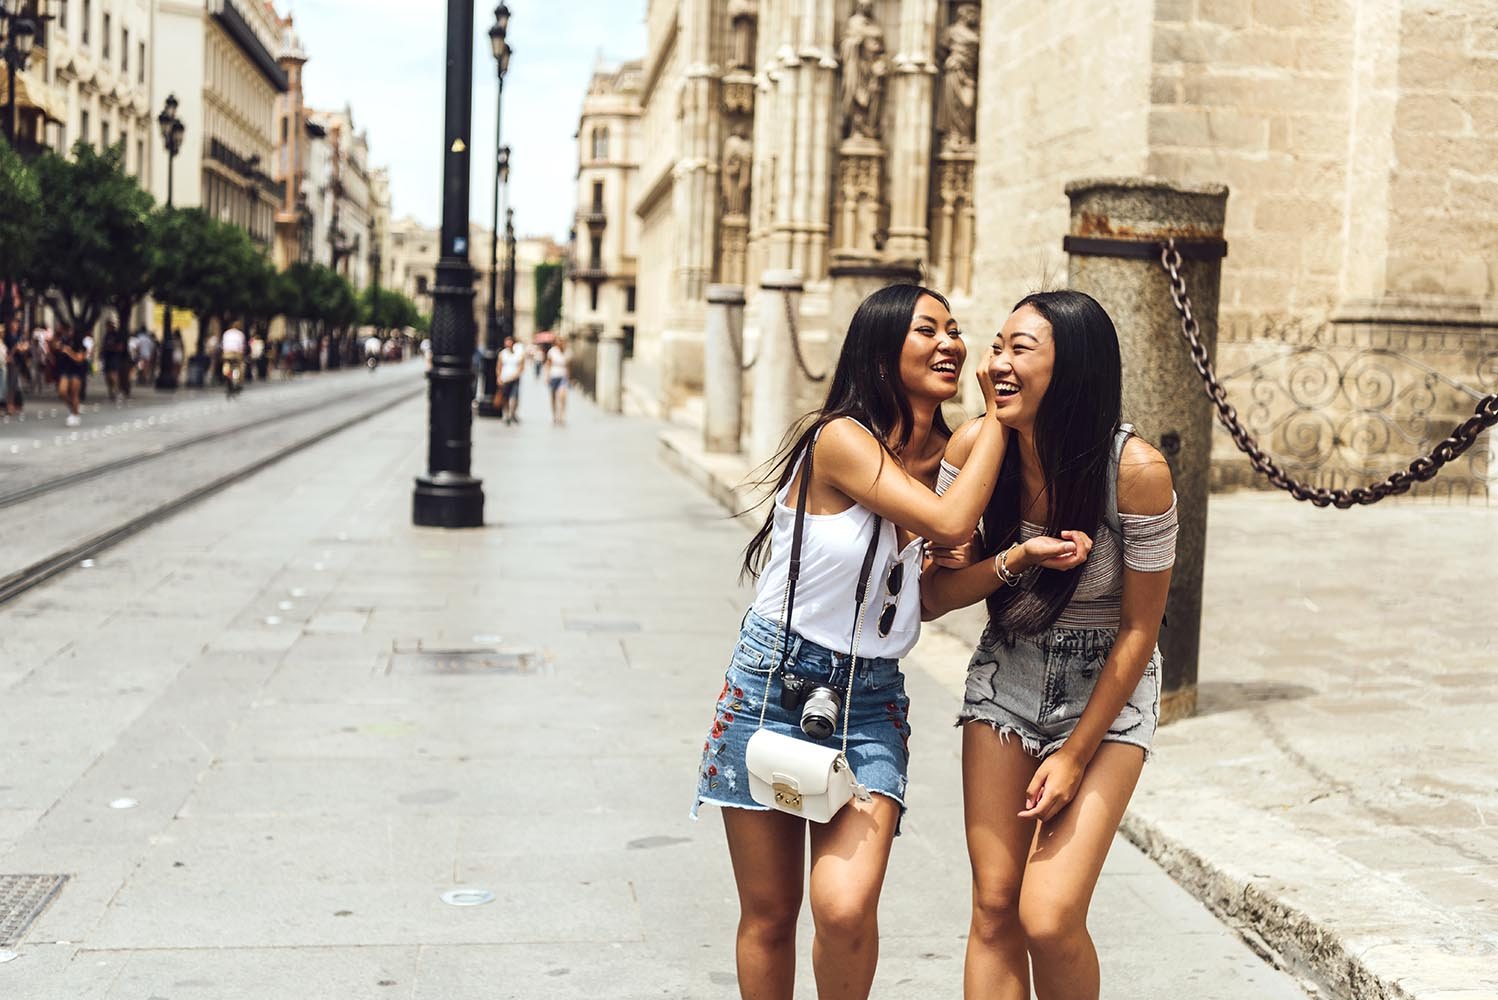 Two Chinese girls walking on street hugging